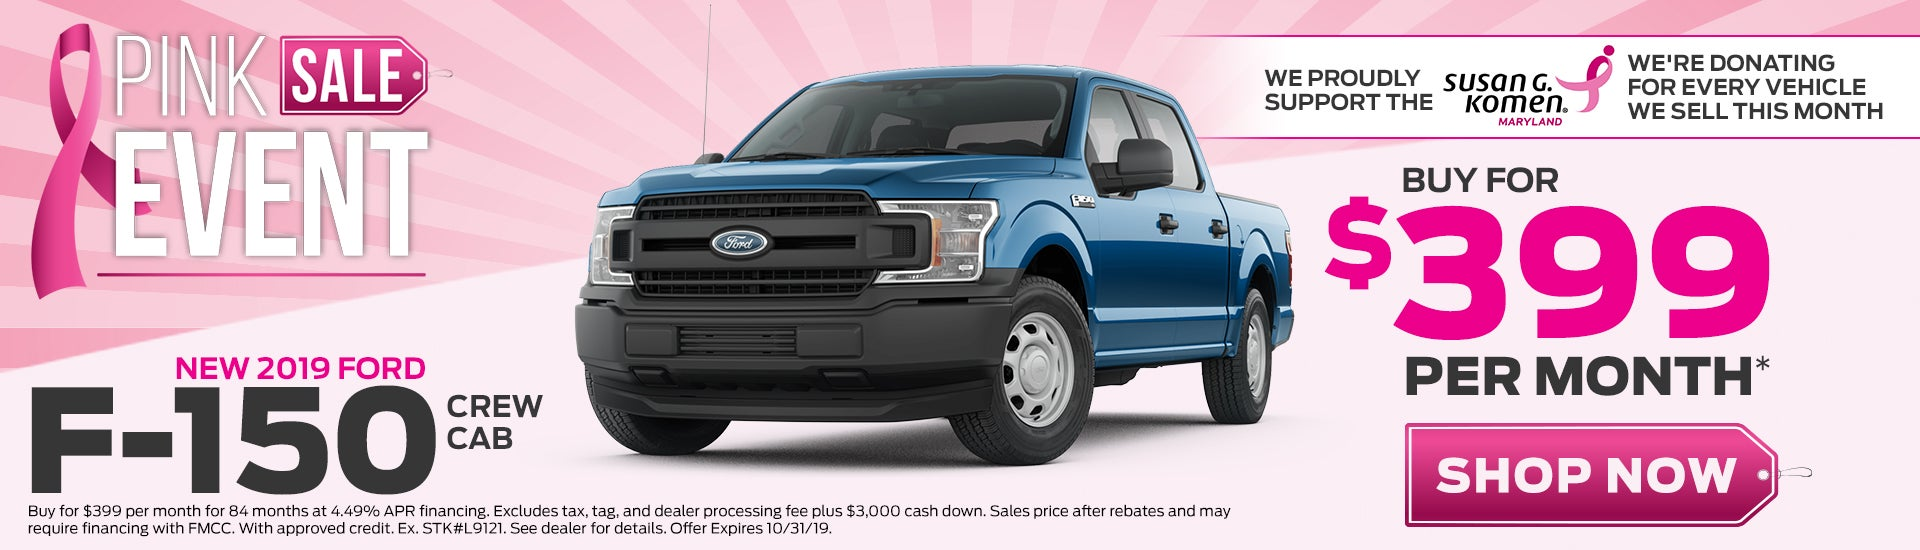 Used Trucks For Sale In Md >> Lexington Park Ford New And Used Ford Dealership Auto